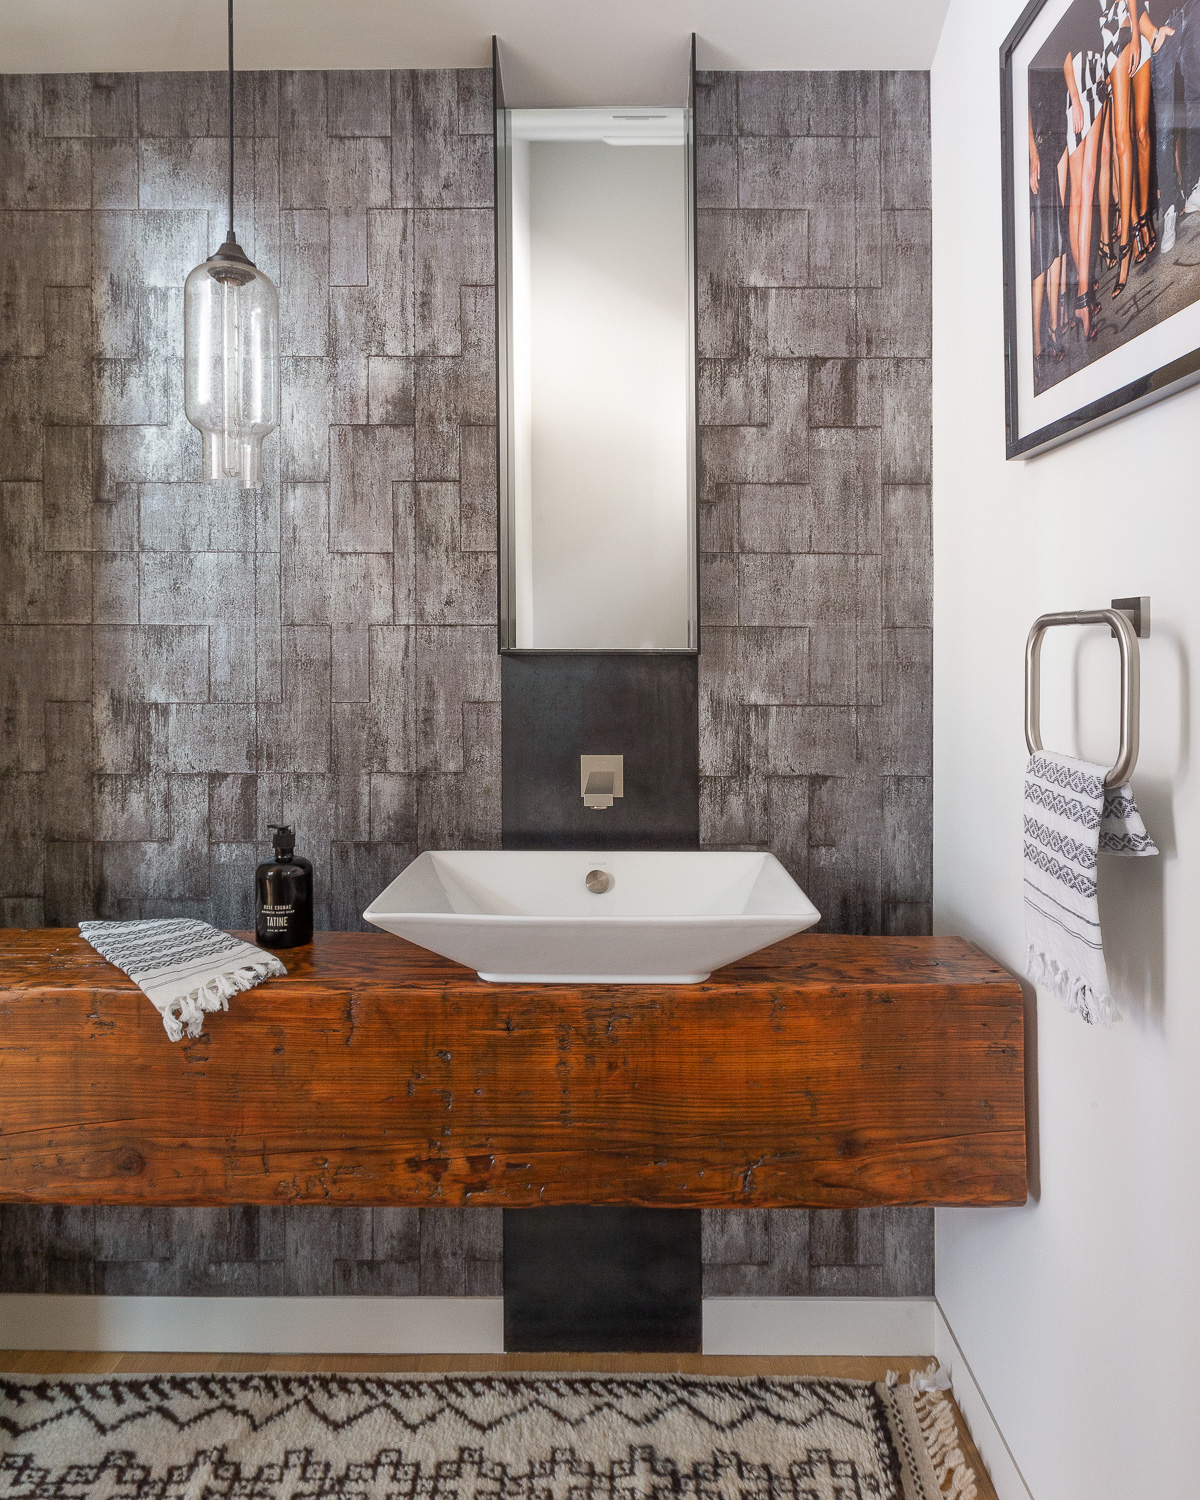 Off the pool room, a luxurious powder room is enhanced by a reflective Elitis wallcovering. The area rug is from Tazi Designs, and the pendant light is from Nicheliving.